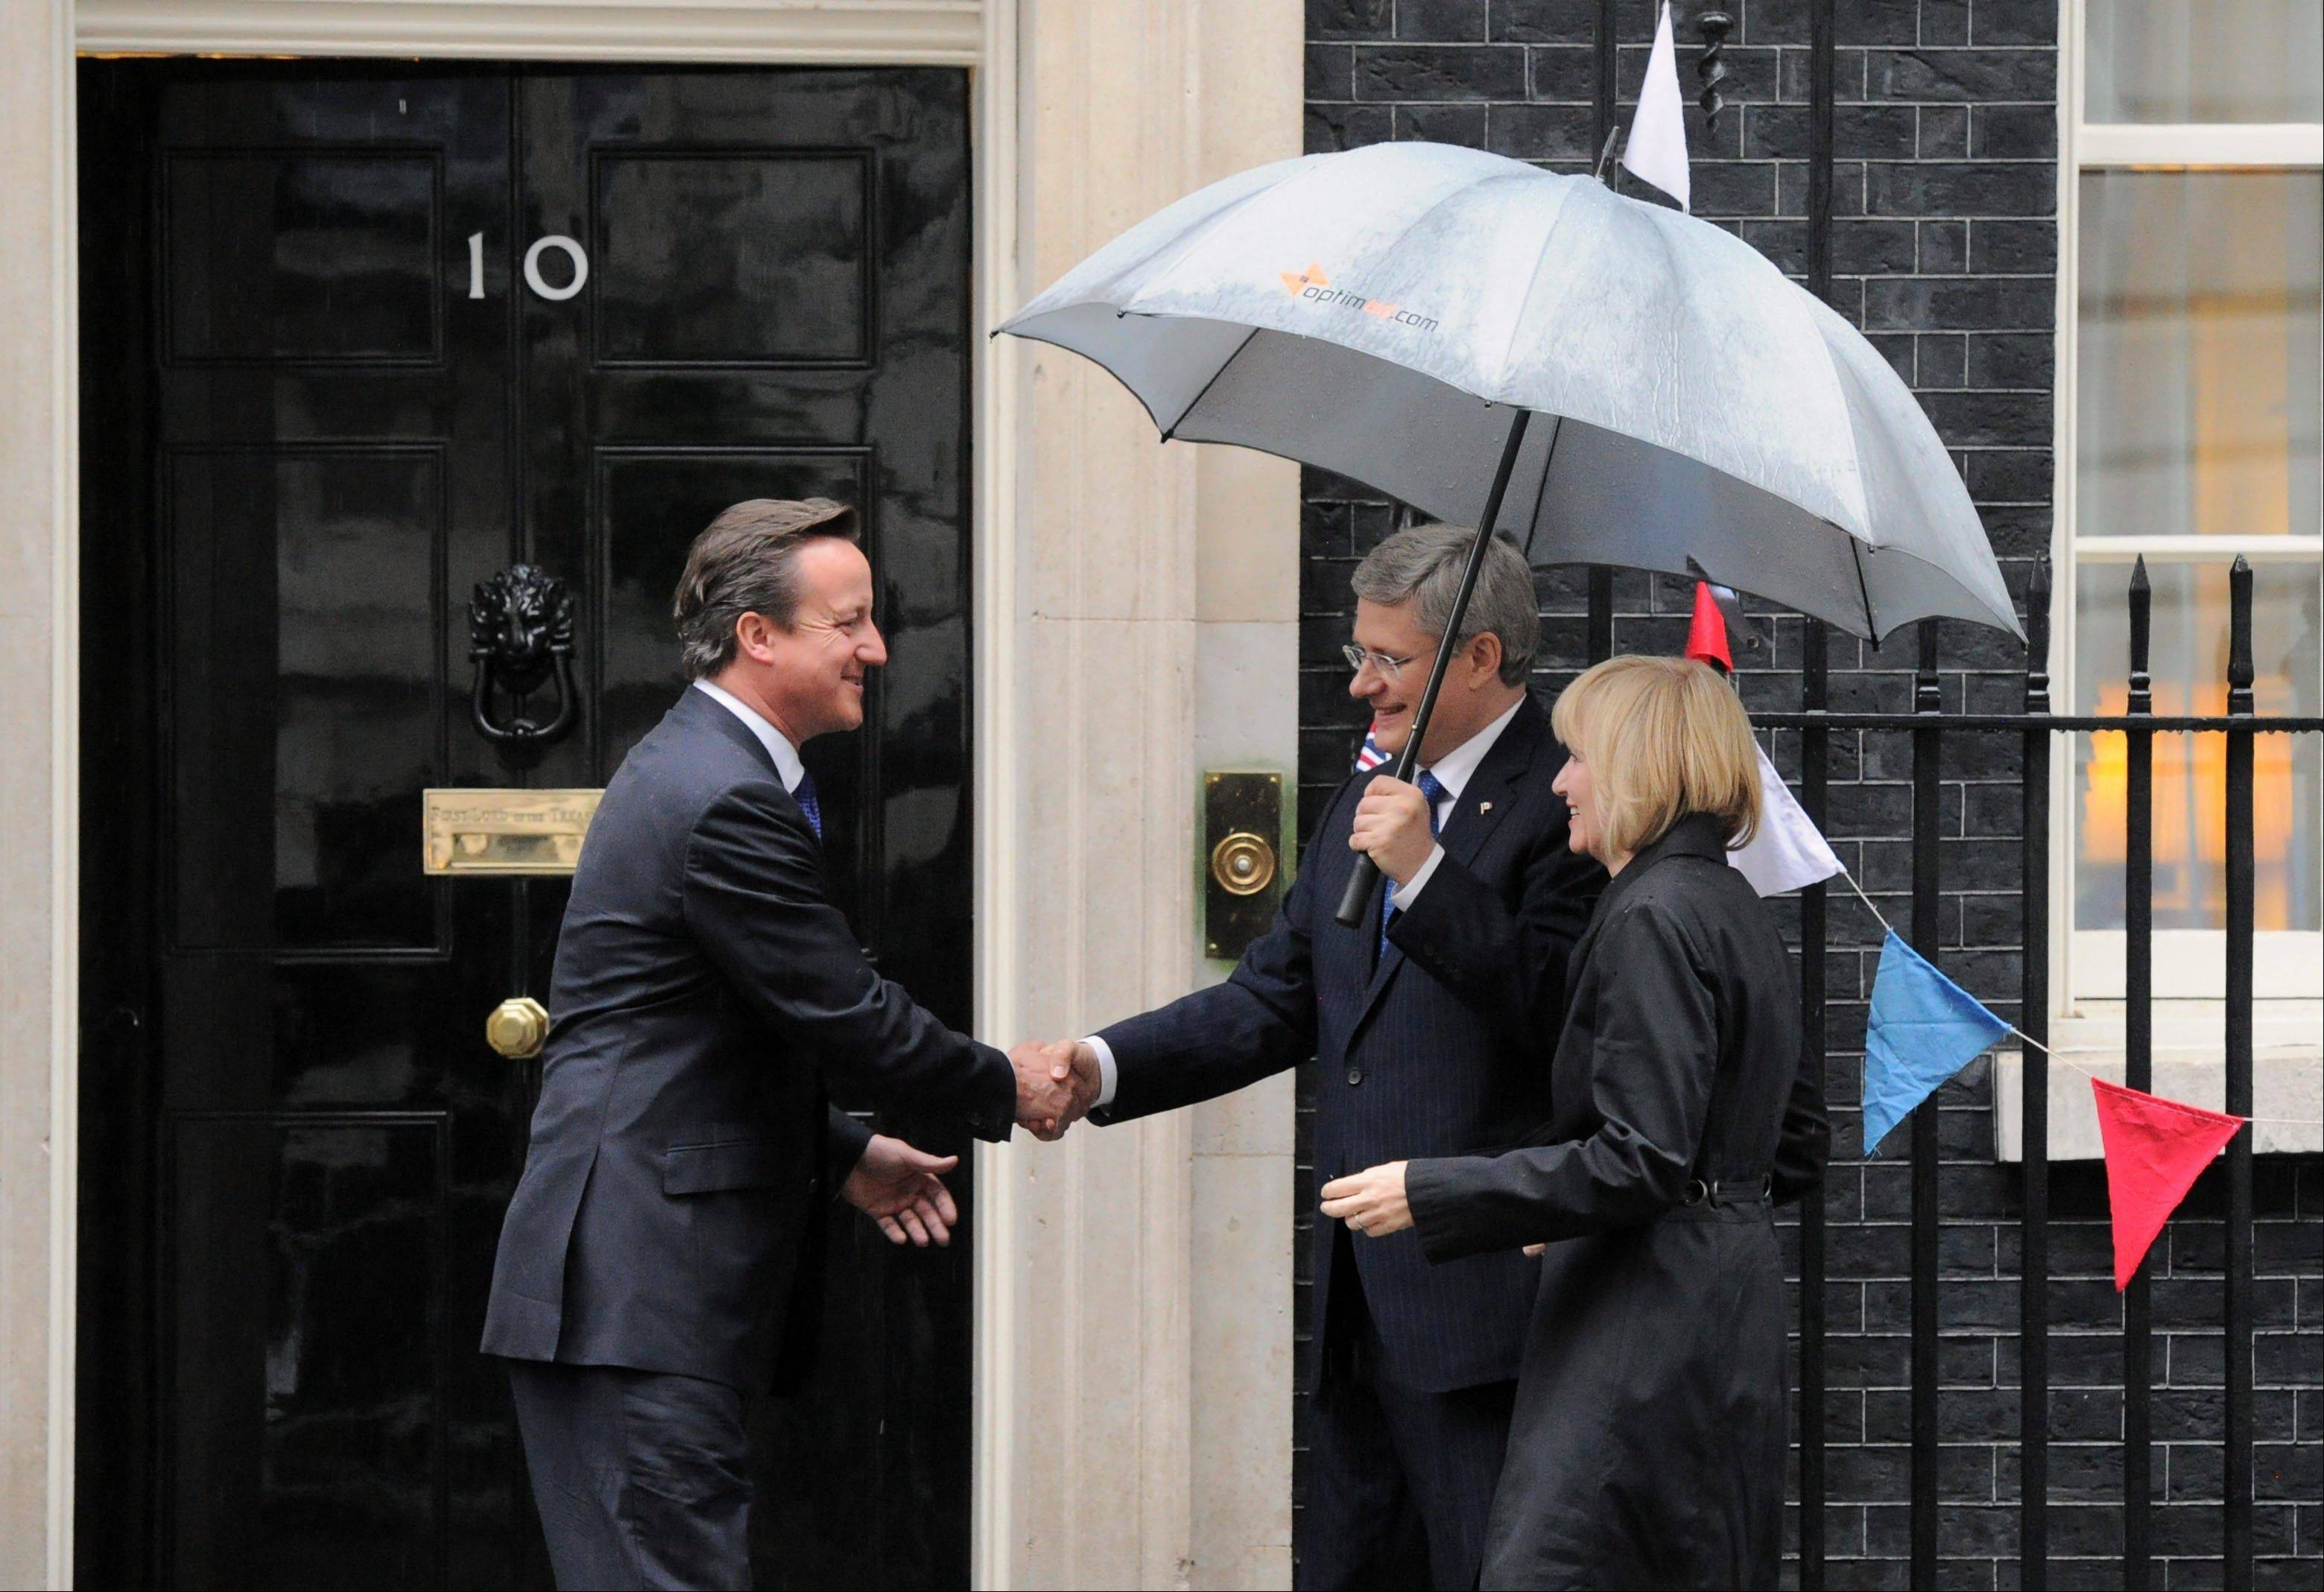 Prime Minister Stephen Harper and wife Laureen, are greeted by British Prime Minister David Cameron as they arrive to 10 Downing Street in London on Tuesday, June 5, 2012.